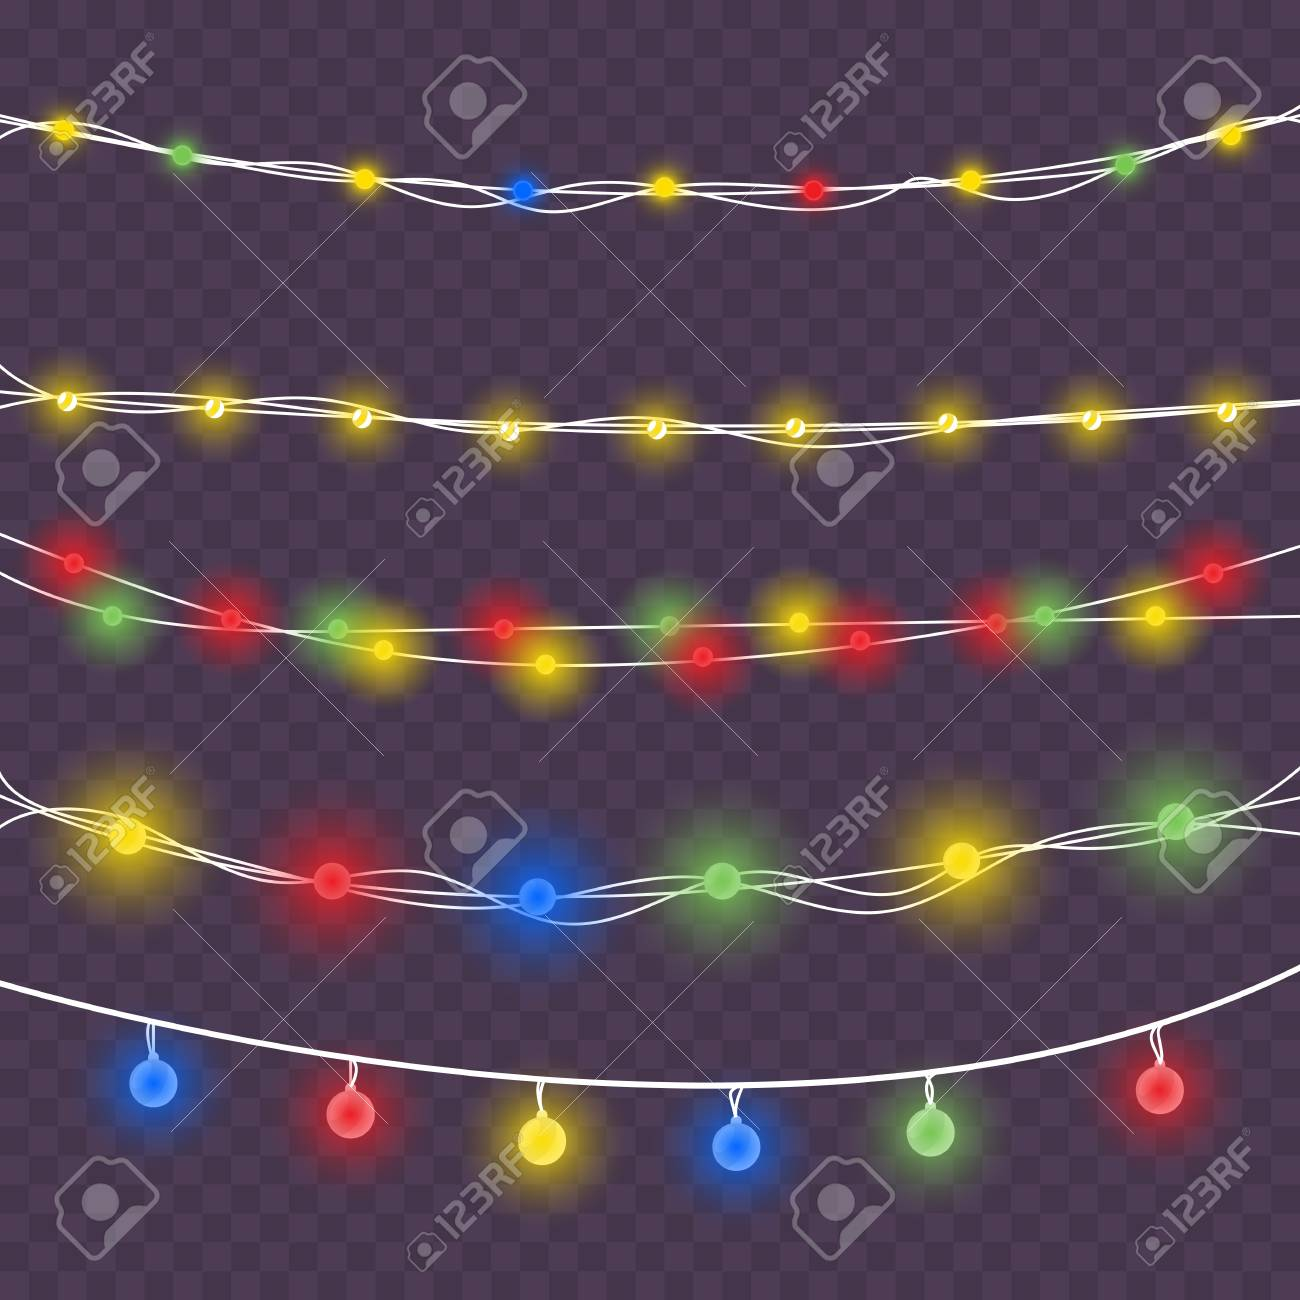 christmas light garland realistic glowing colored light bulbs on wires for decoration on xmas or